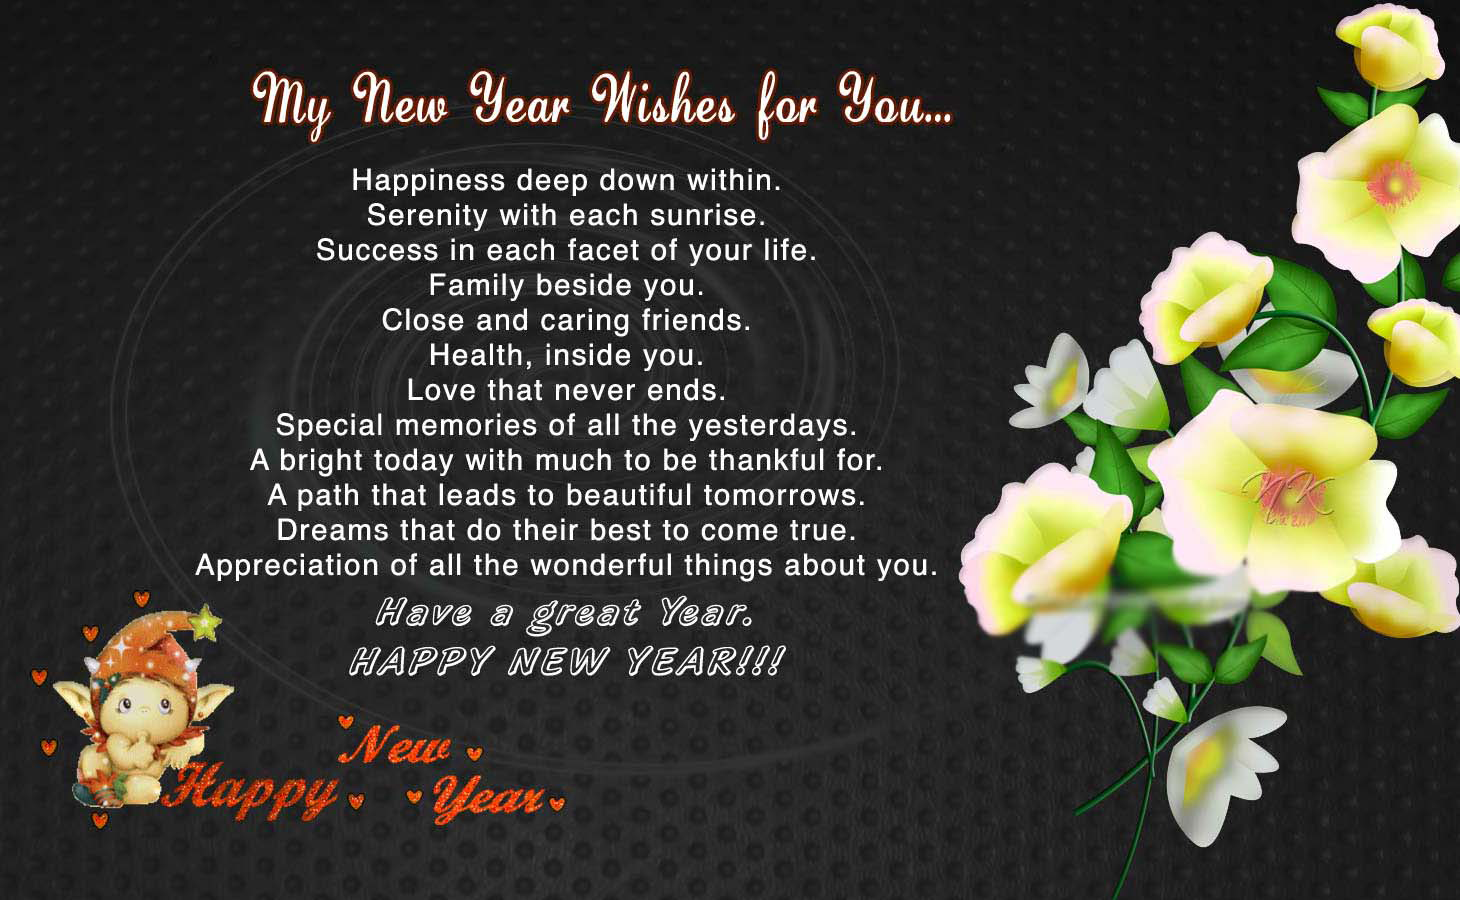 Happy new year 2017 poems happy new year 2017 poems for New year eve messages friends